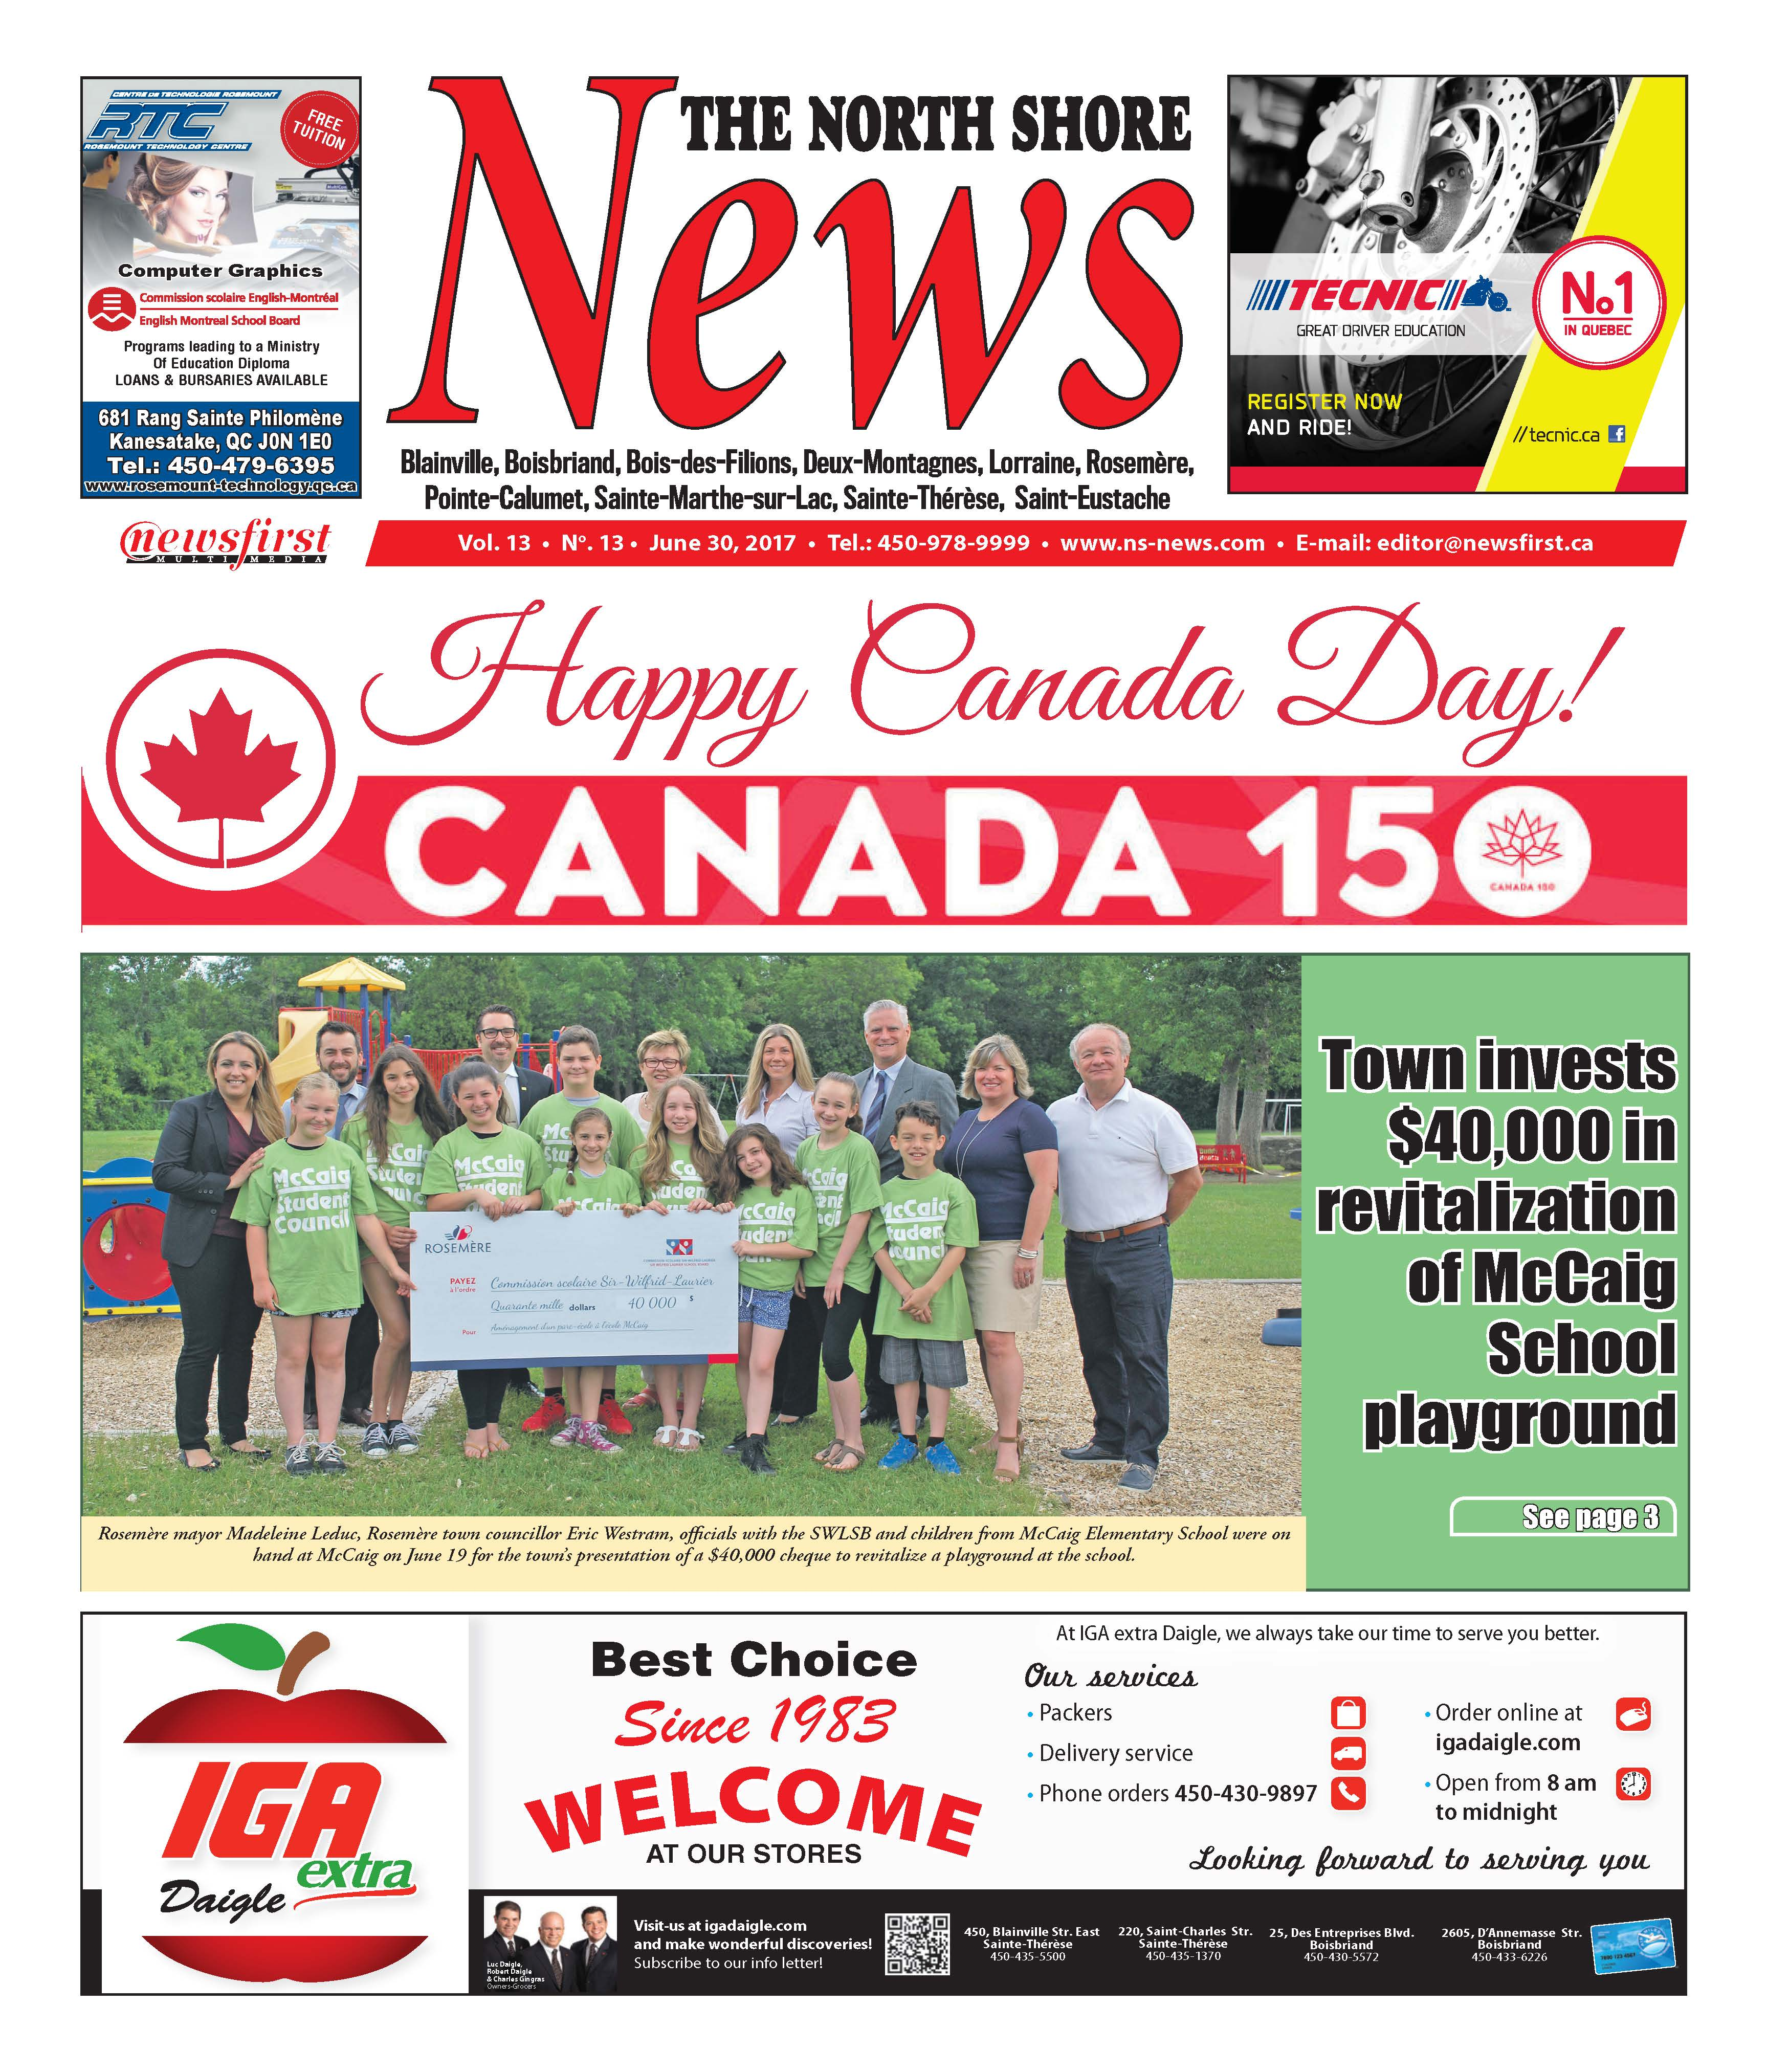 Front page image of the North Shore News Volume 13-13